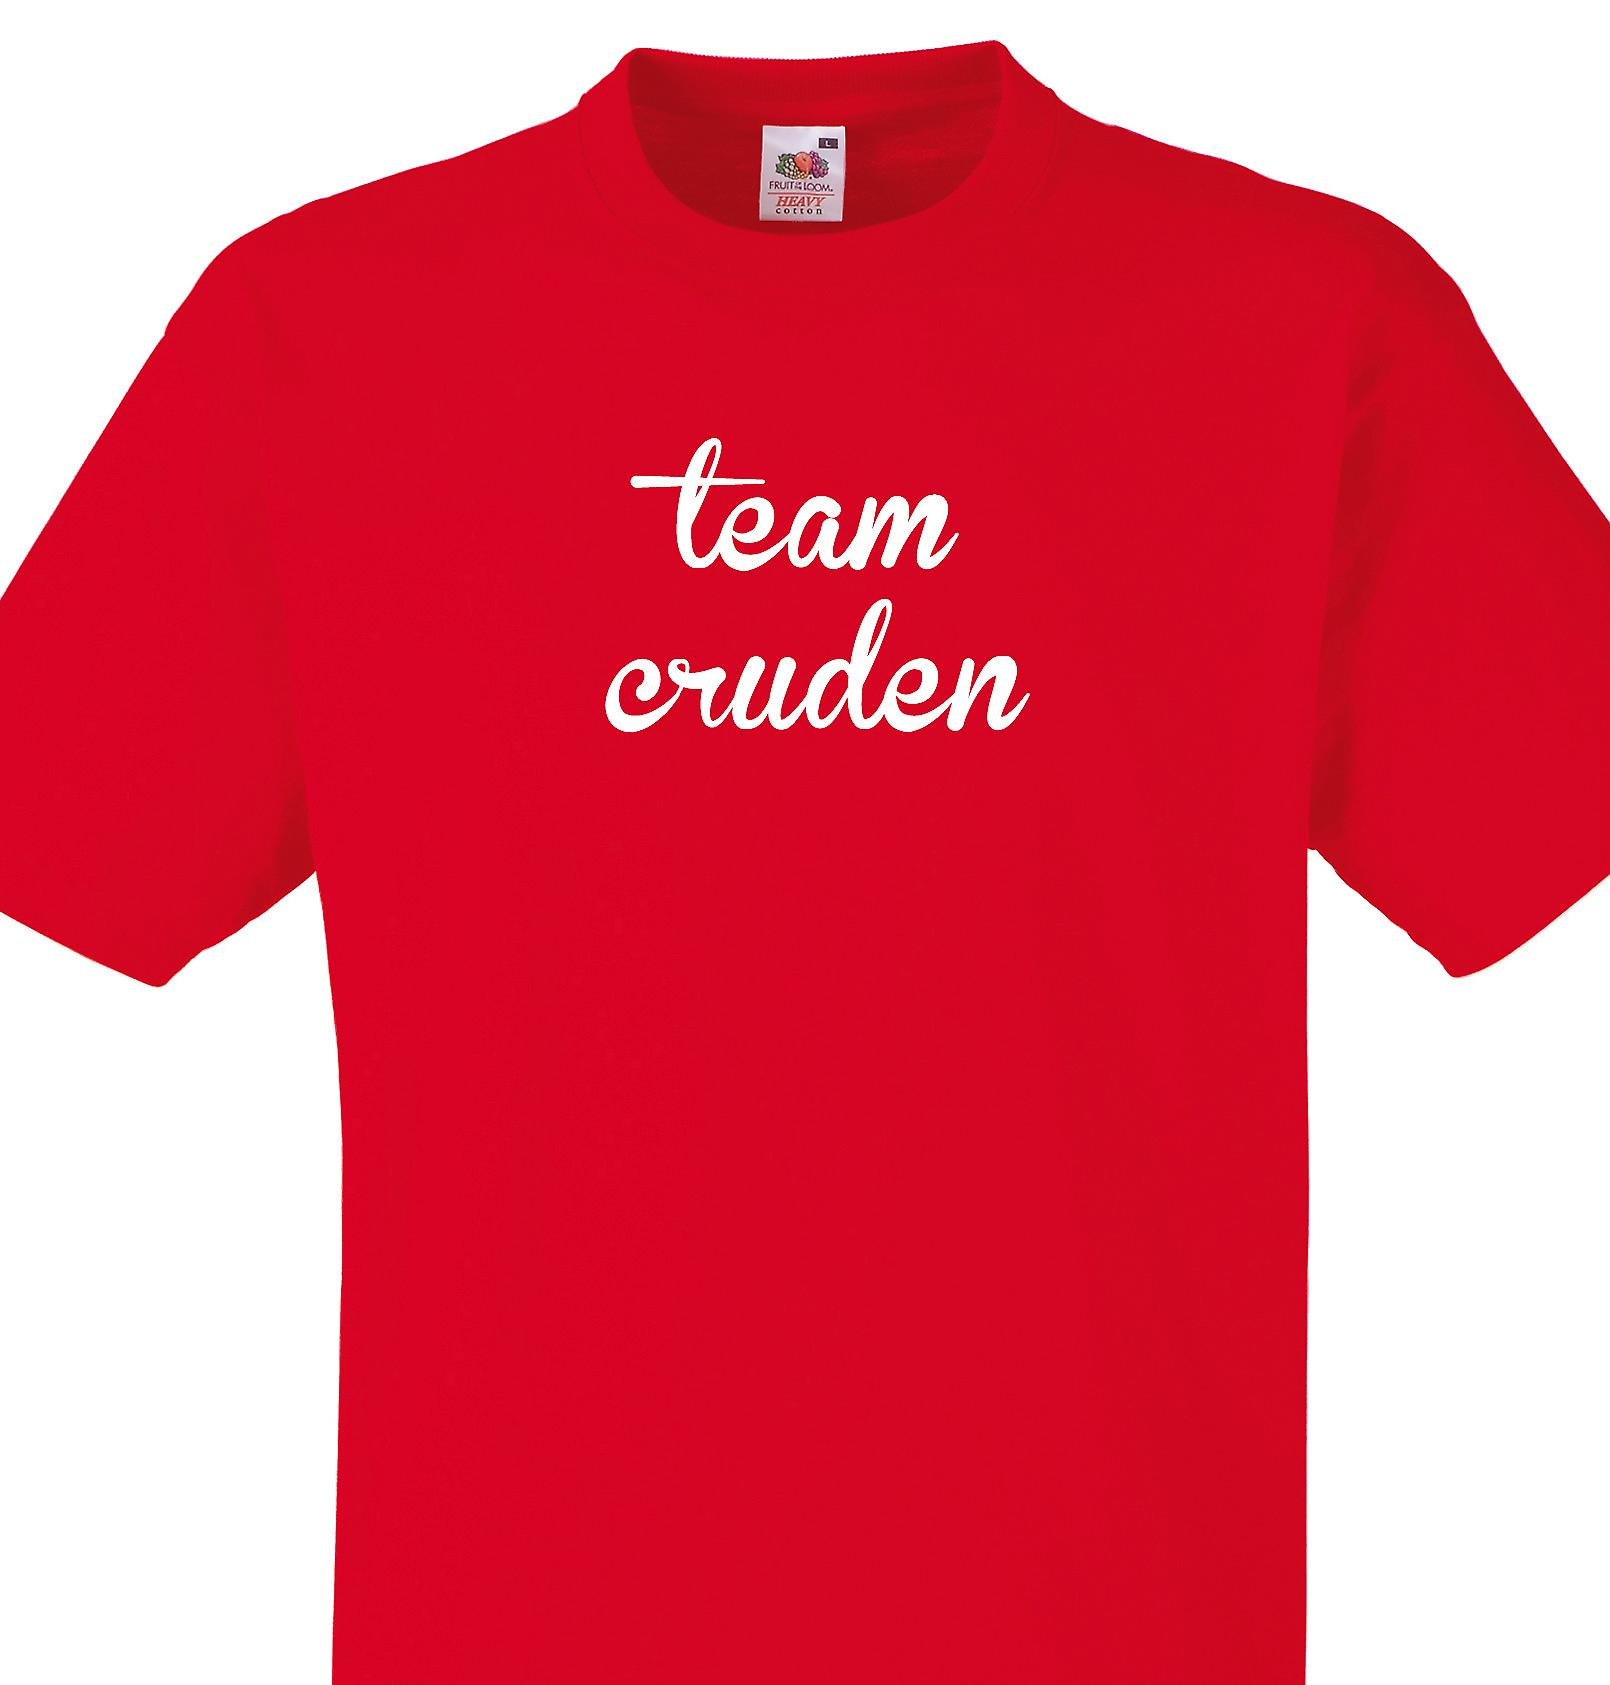 Team Cruden Red T shirt